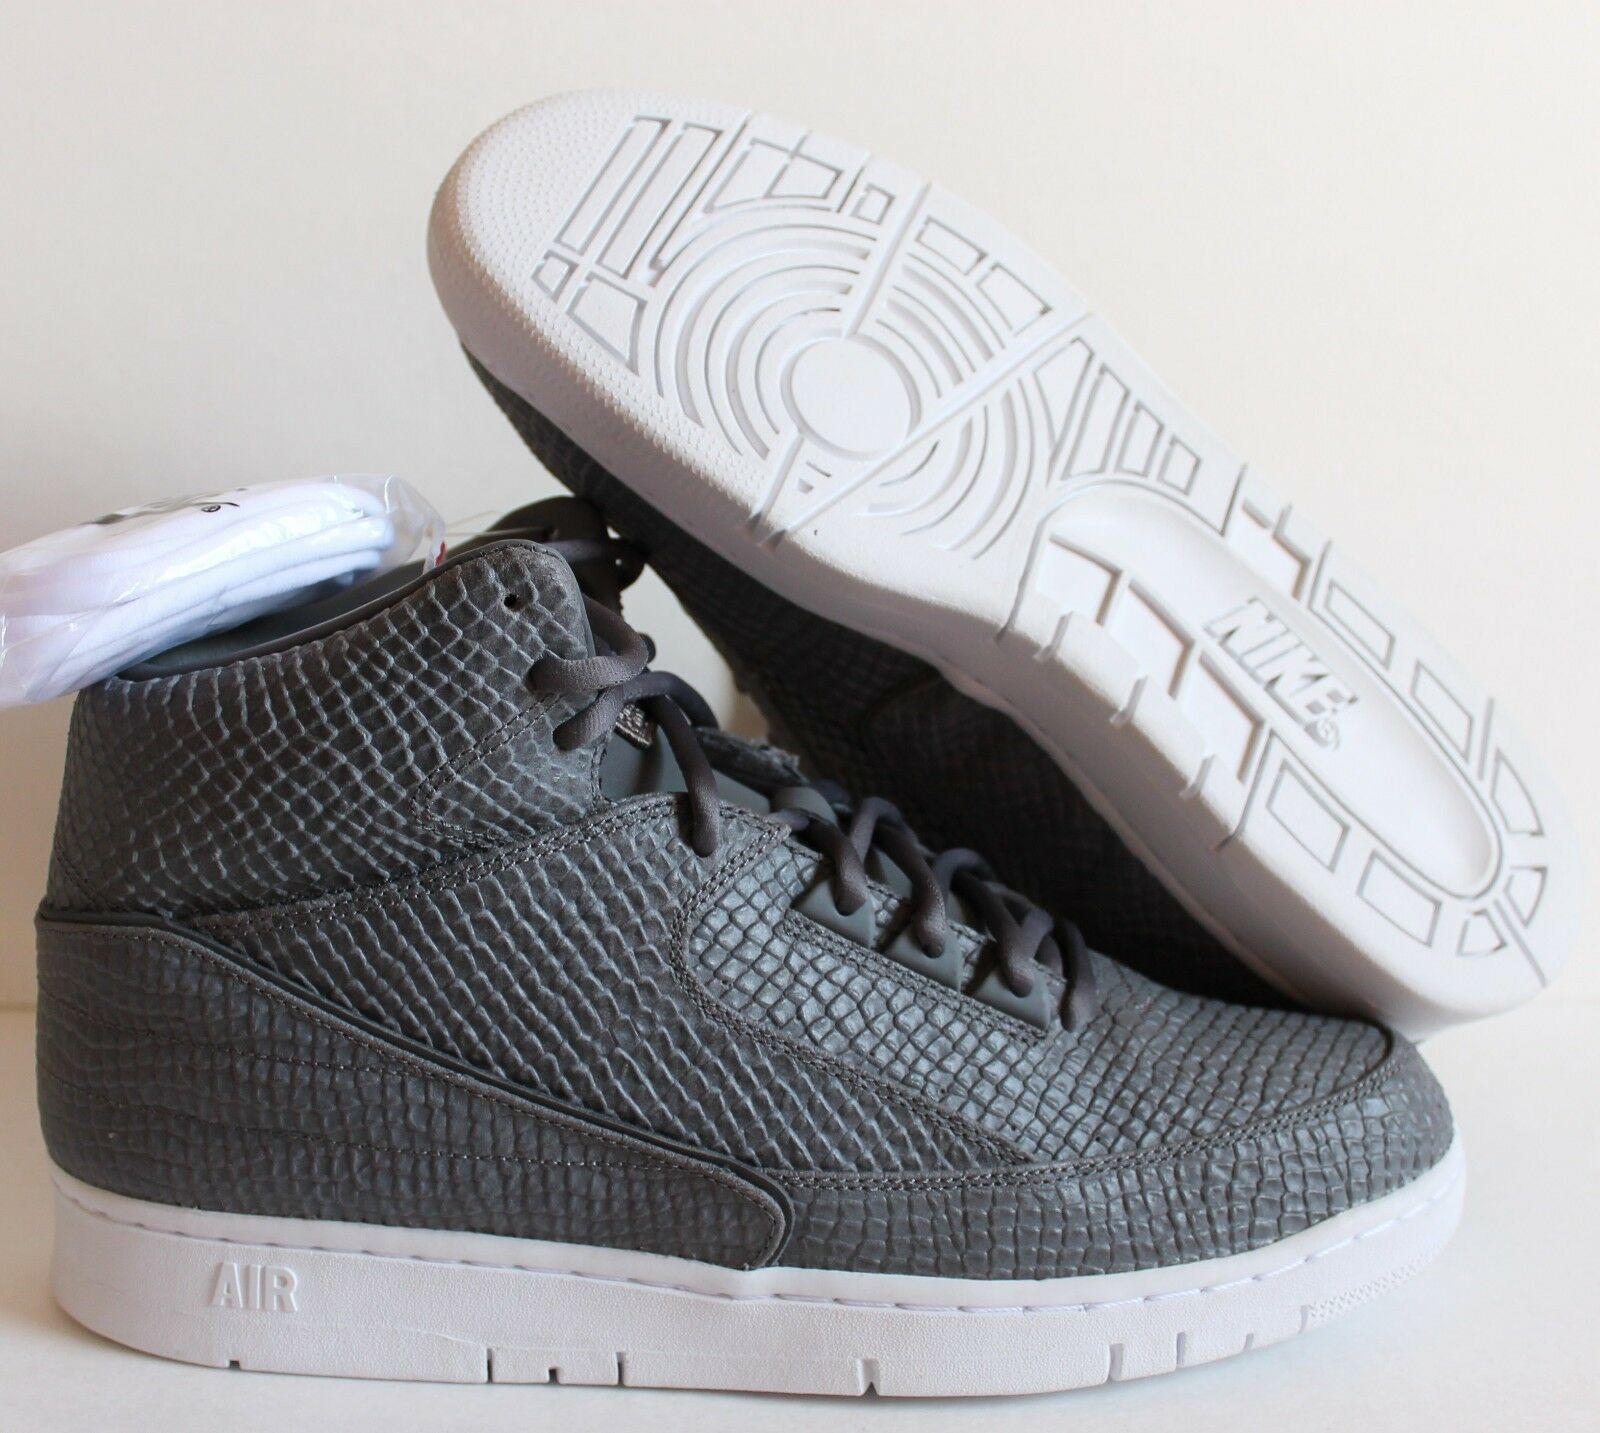 NIKE Uomo AIR PYTHON SP SNAKESKIN COOL GREY-WHITE SZ 12.5 [658394-001]